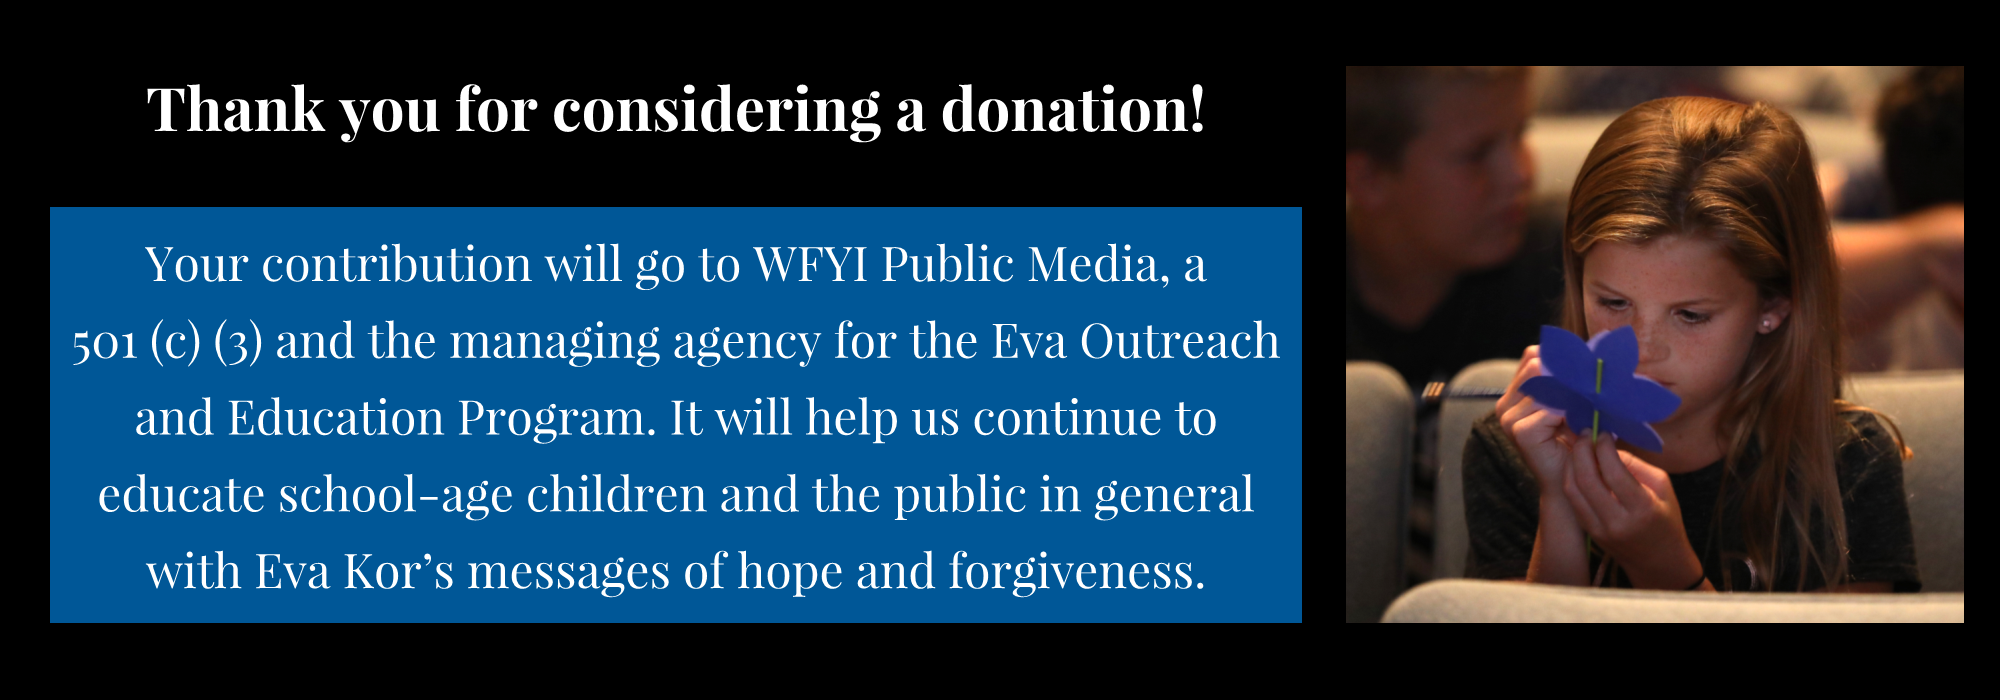 Thank you for considering a donation! Your contribution will go to WFYI Public Media, a  501 (c) (3) and the managing agency for the Eva Outreach and Education Program. It will help us continue to educate school-age children and the public in general with Eva Kor's messages of hope and forgiveness.